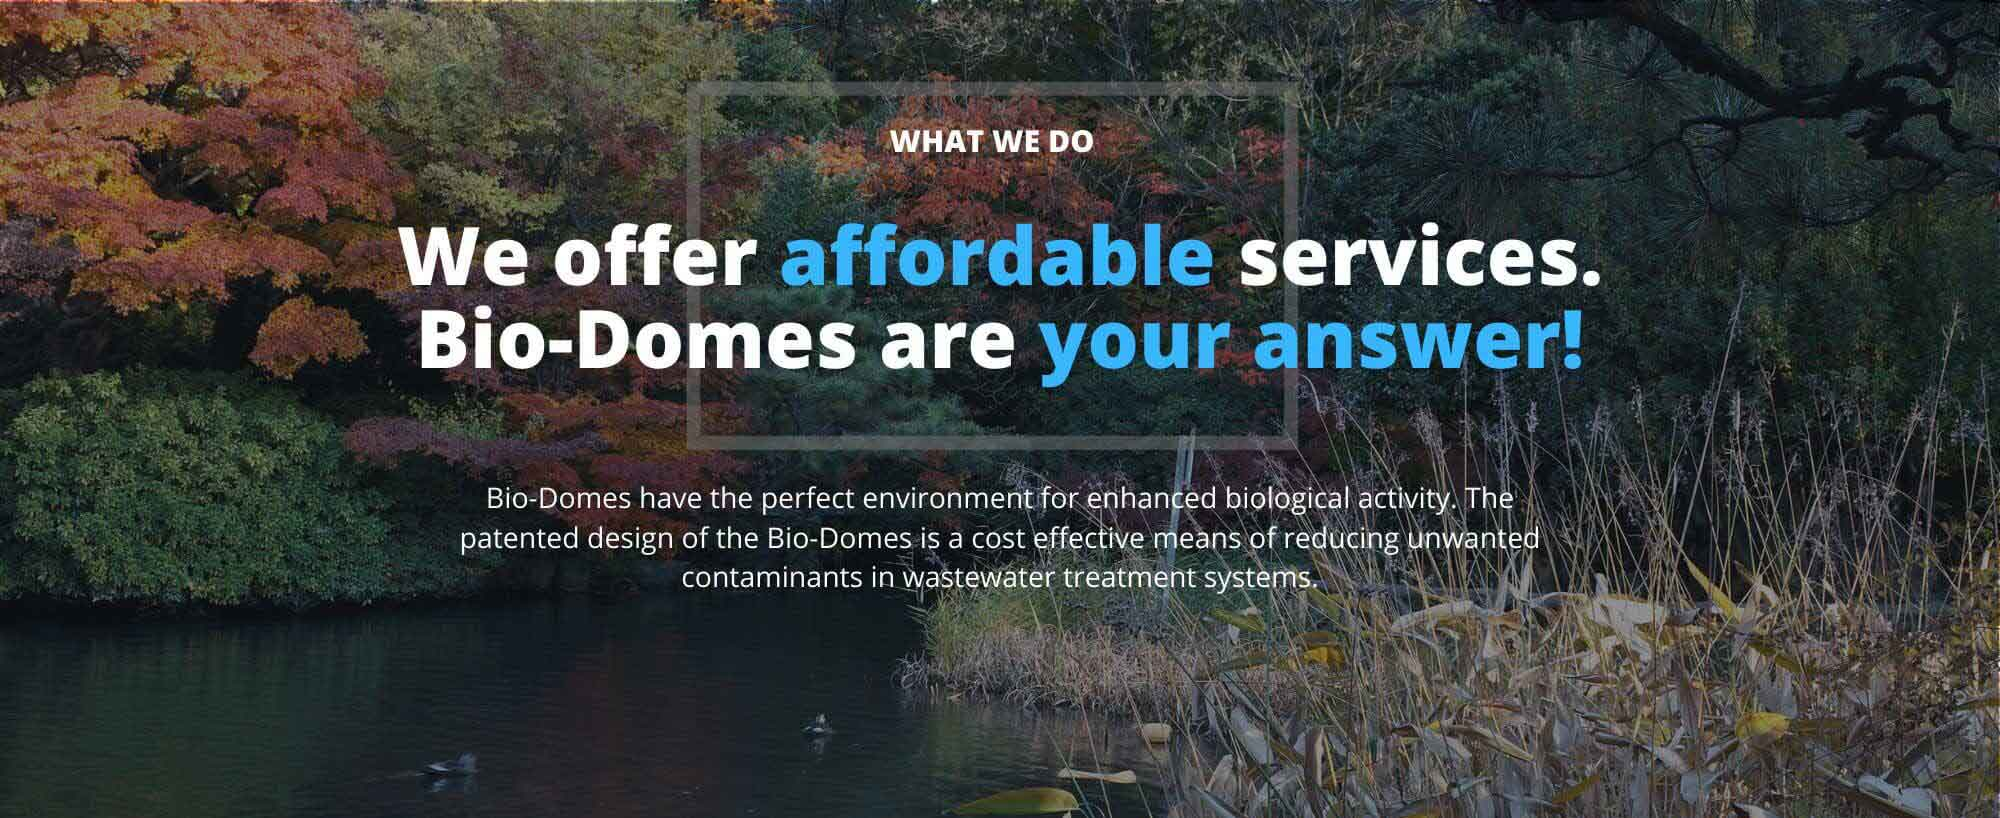 WCS Affordable Services